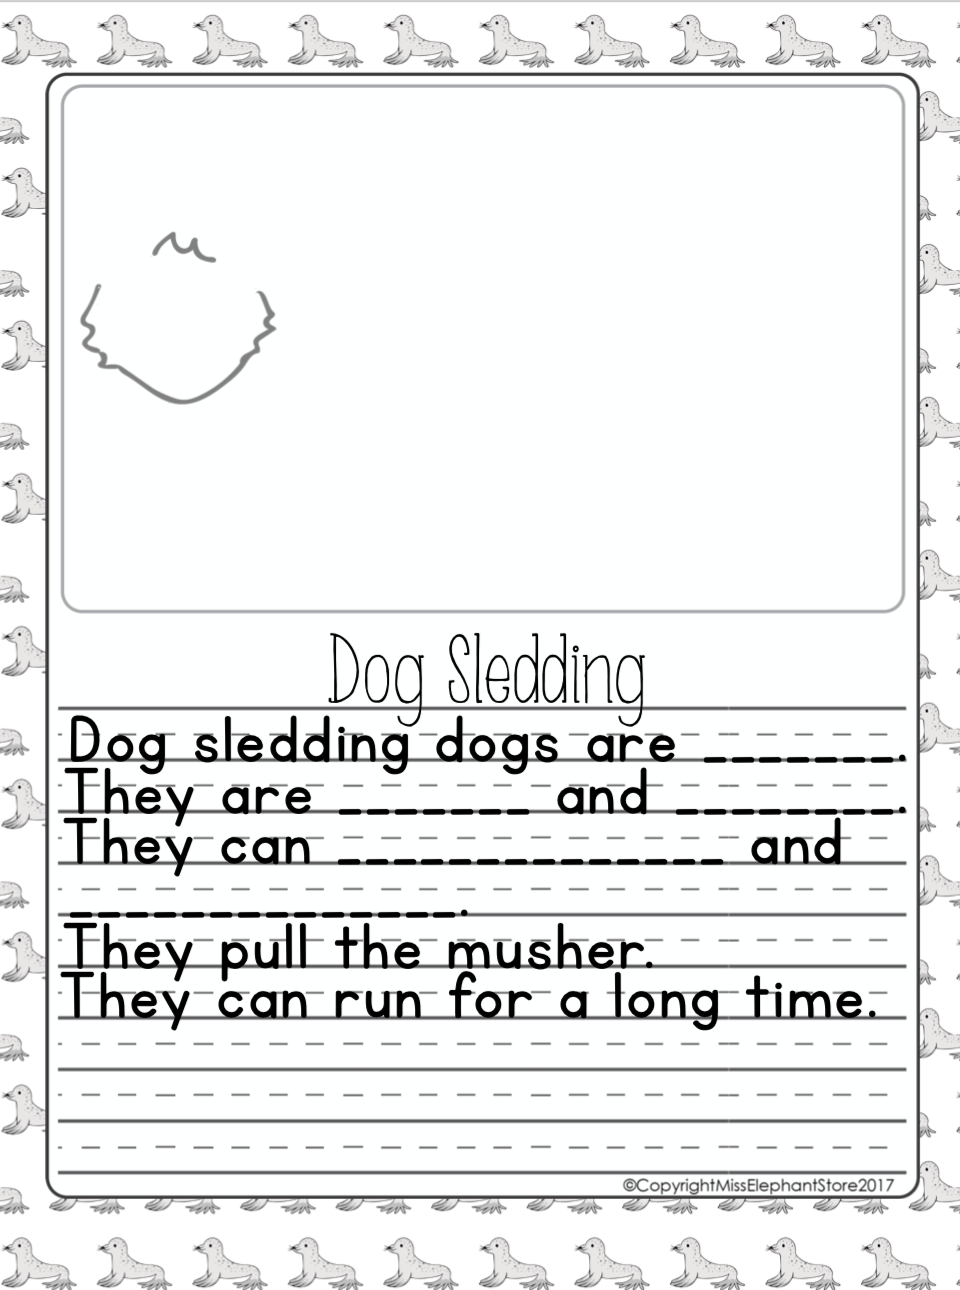 Kindergarten / Grade 1 Writing Prompts (january) | Picture